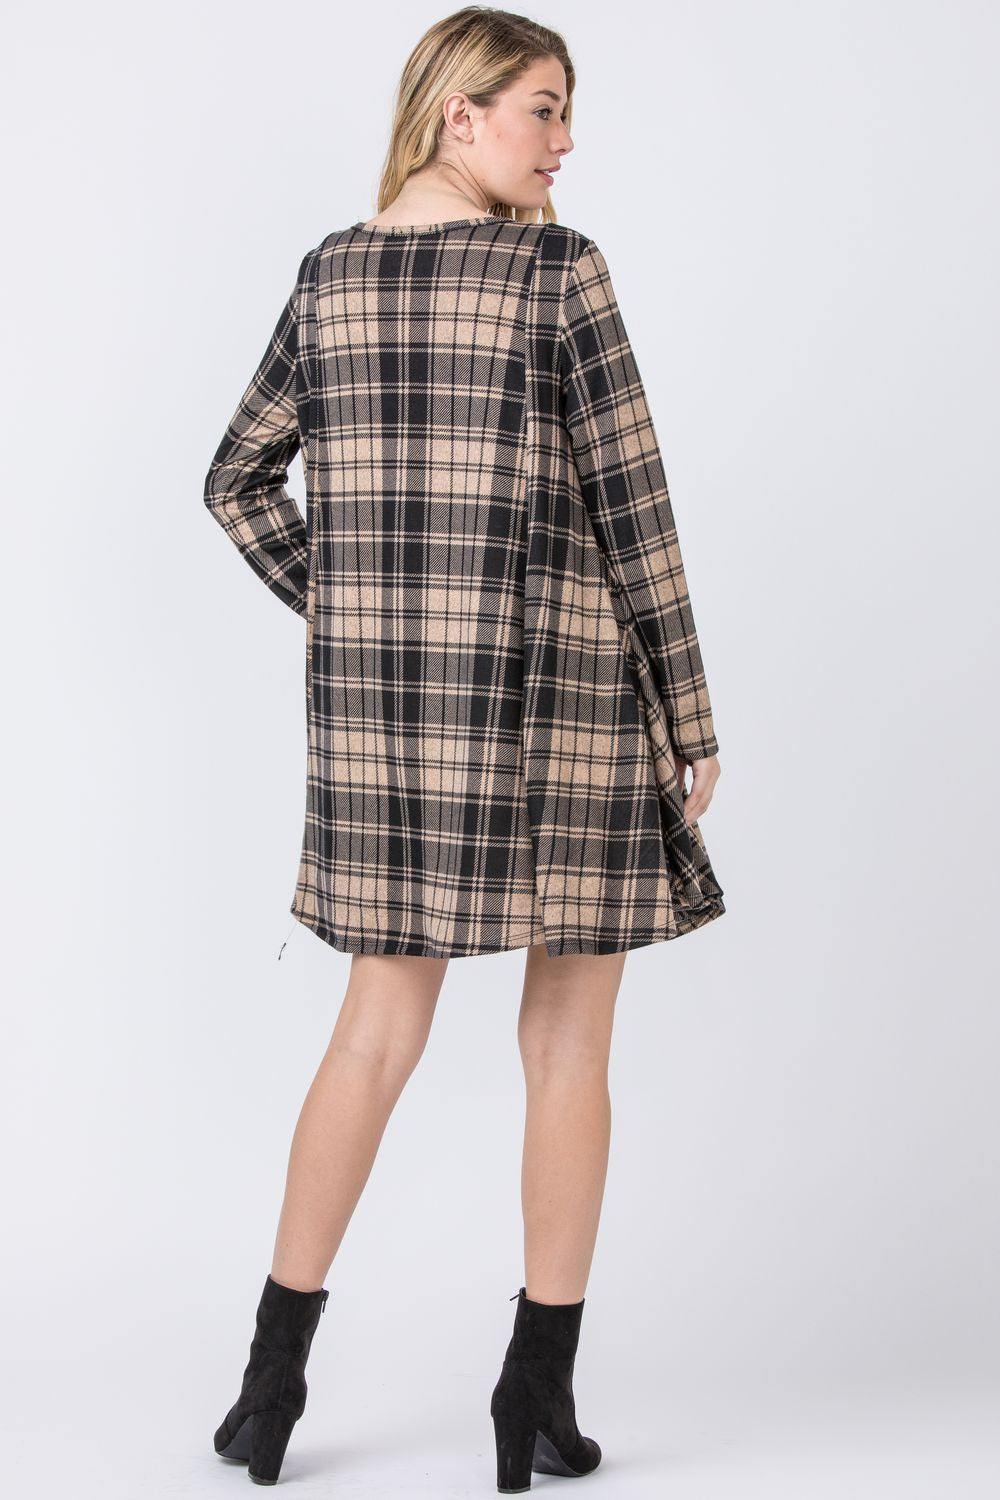 Mocha Plaid A-Line Mini Dress